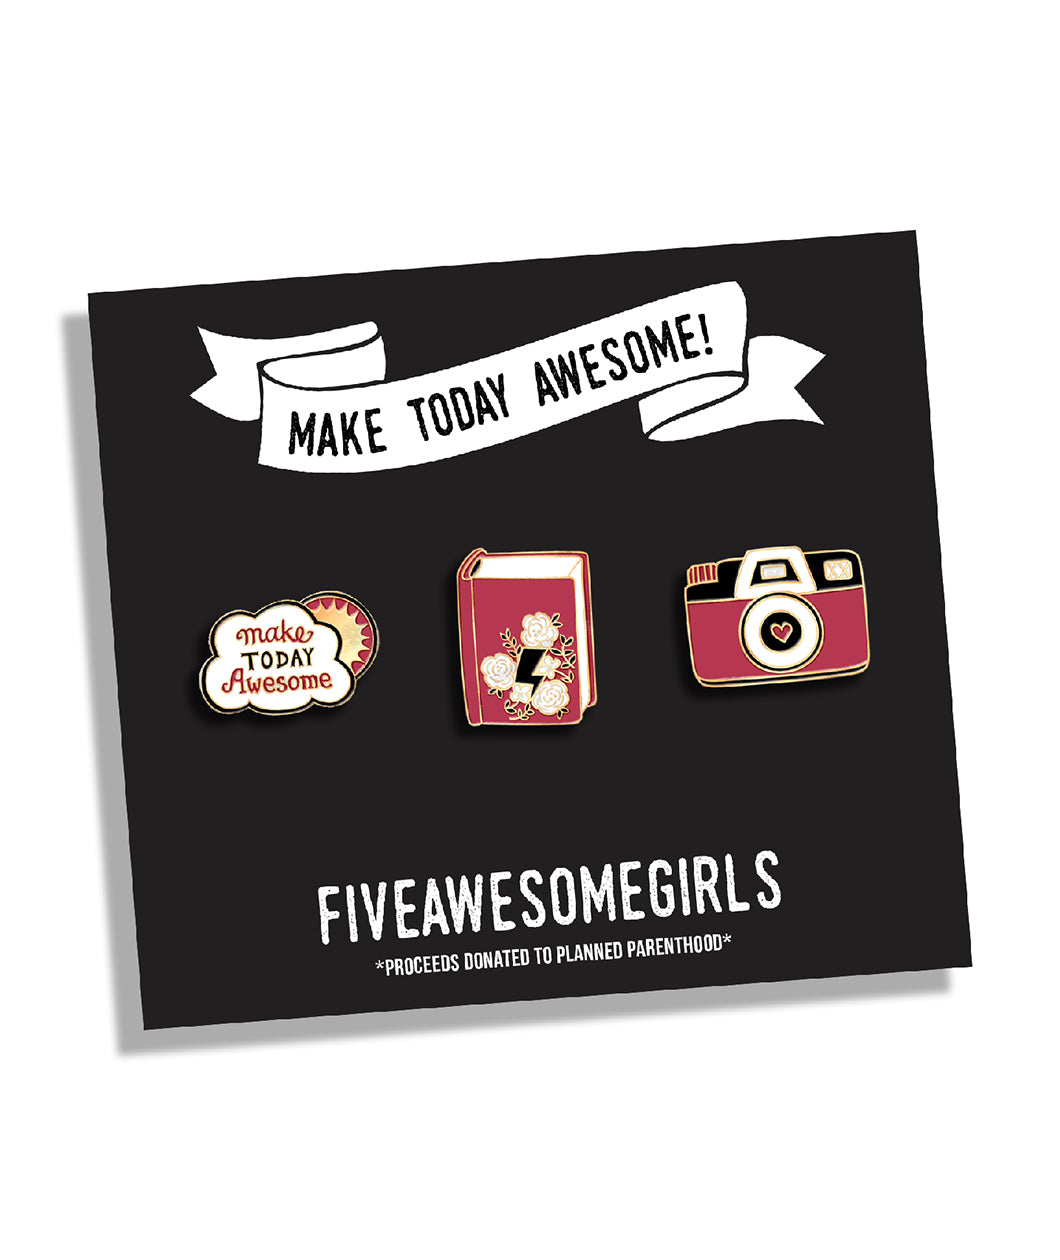 Fiveawesomegirls Lapel Pin Set